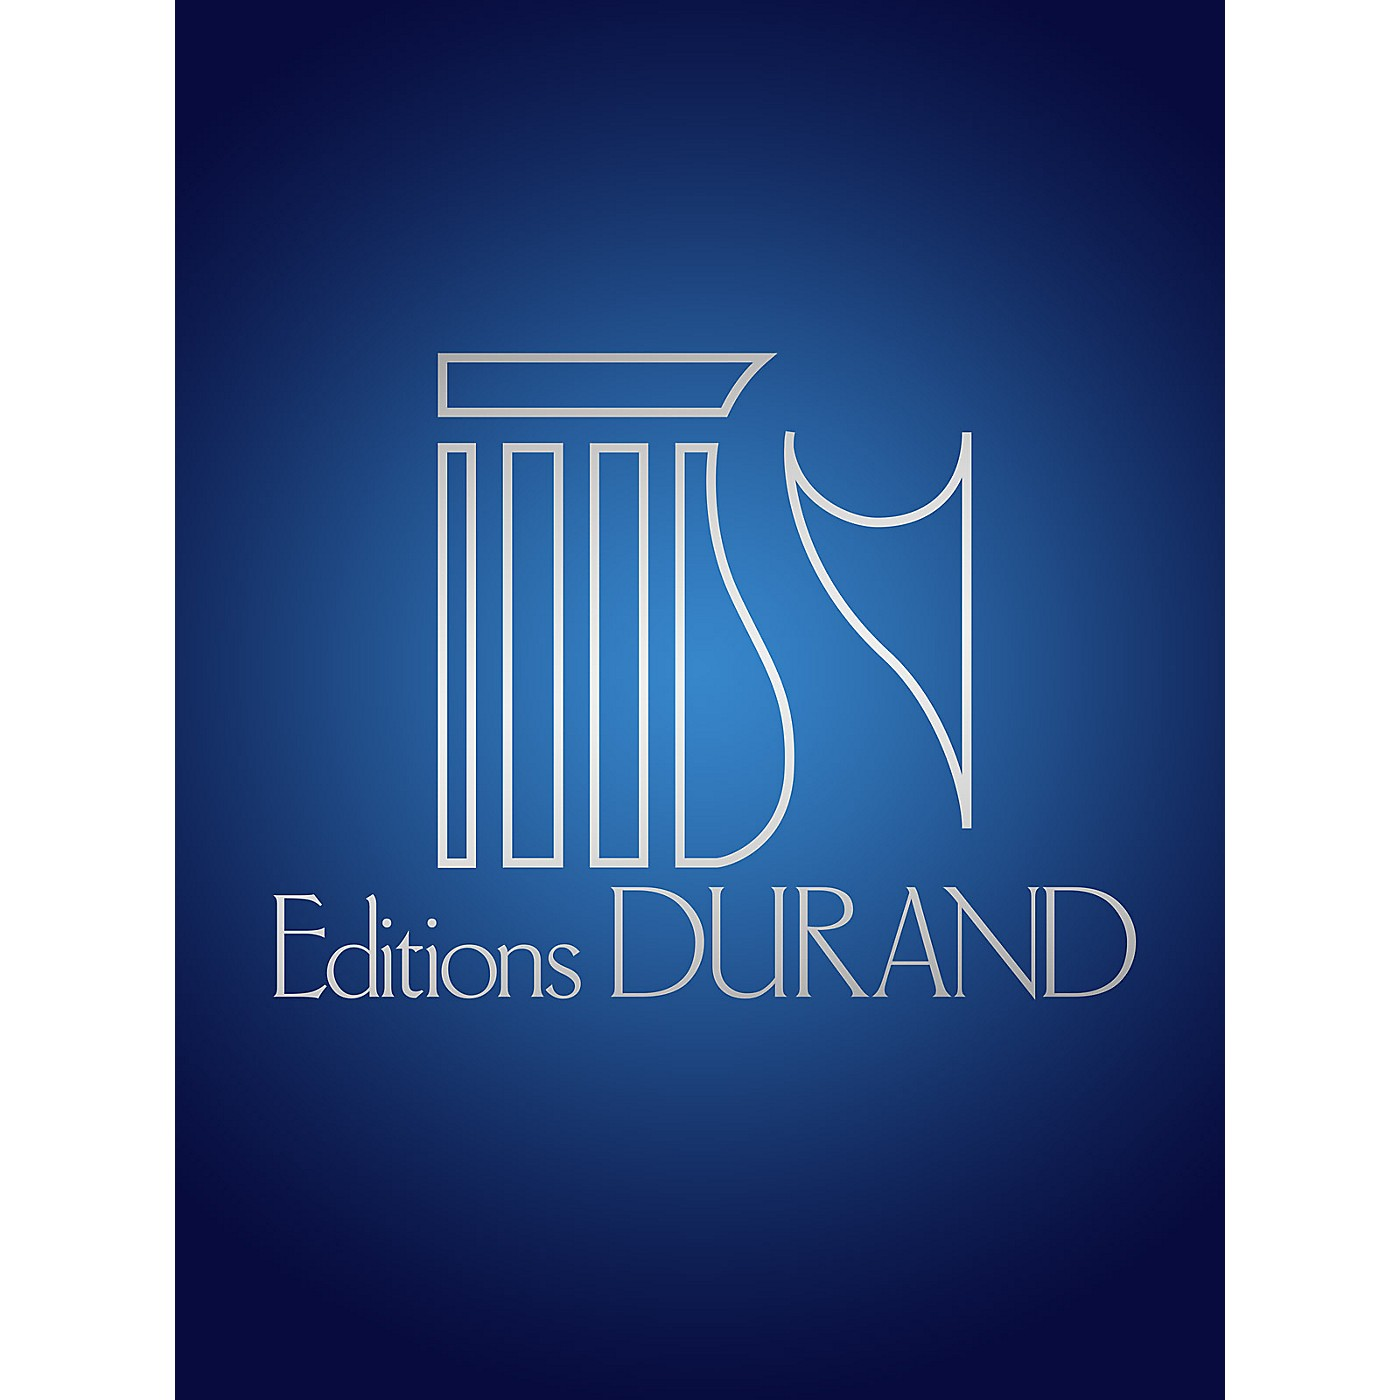 Hal Leonard Tansman Concerto Cell And Piano Editions Durand Series Softcover thumbnail